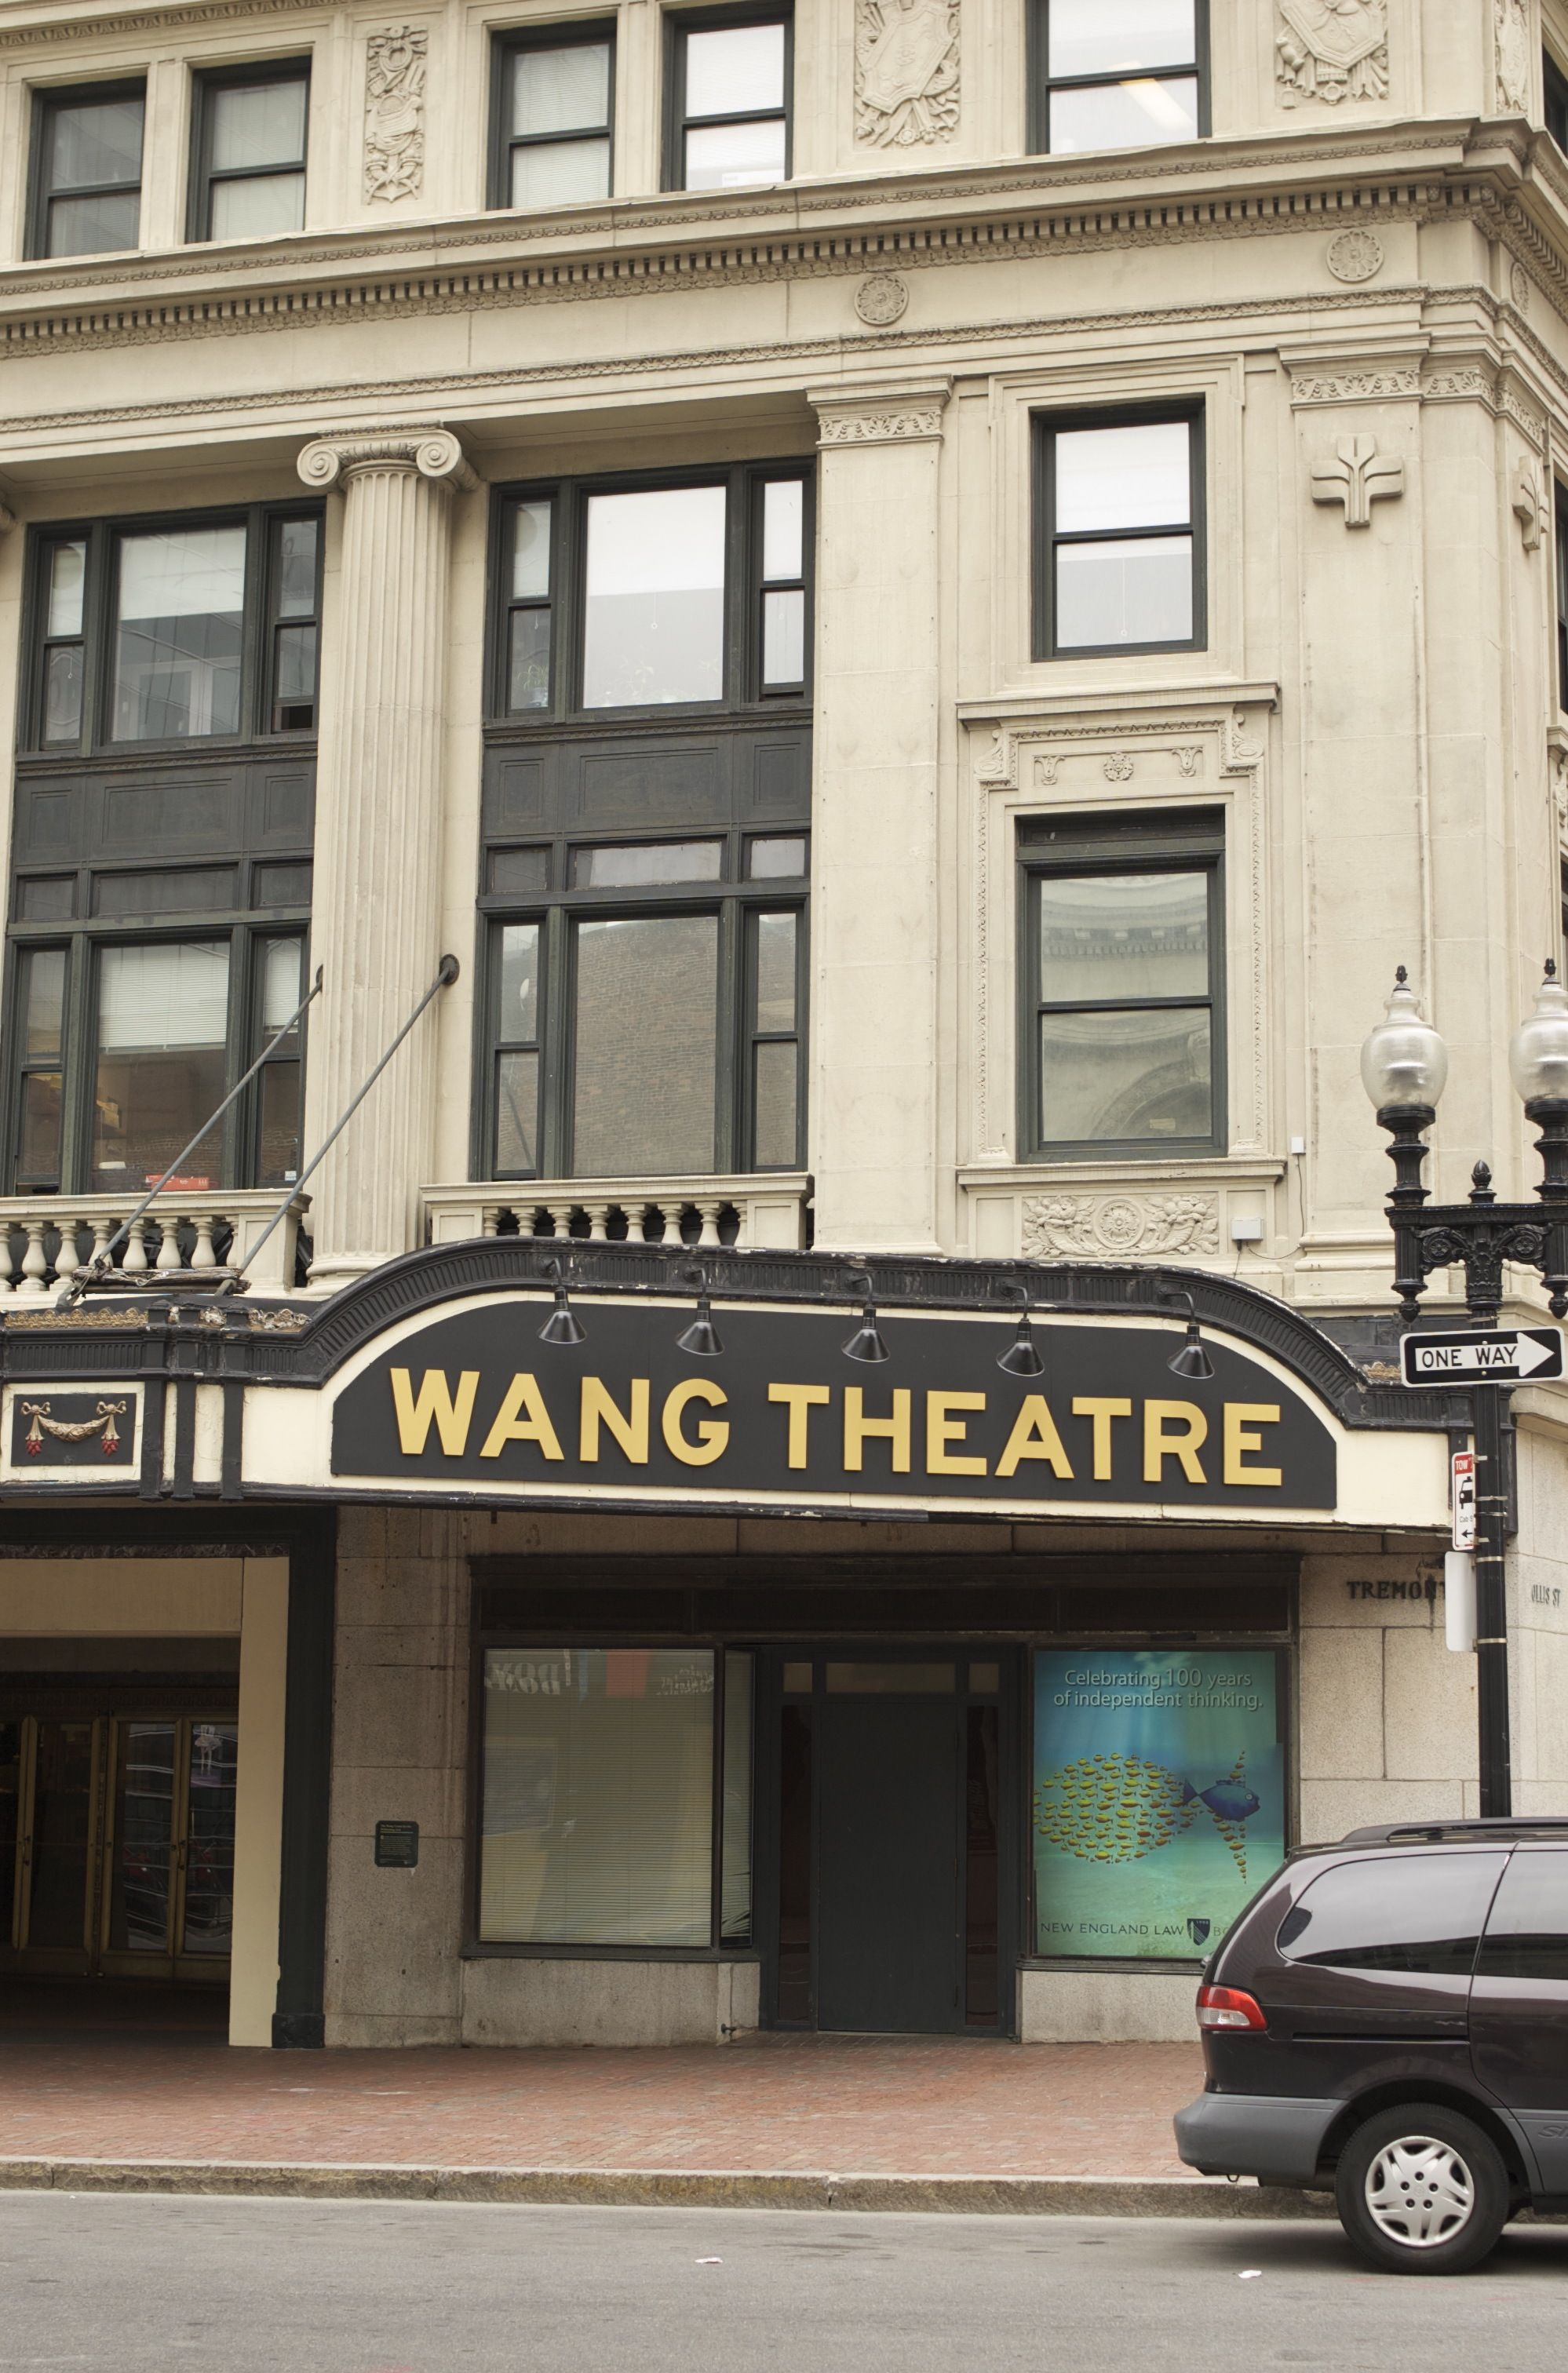 Boston Ma Wang Theatre My Husband And I Enjoyed The Ballet Here Many Times When We Lived There Concert Venue Best Cities New England Homes